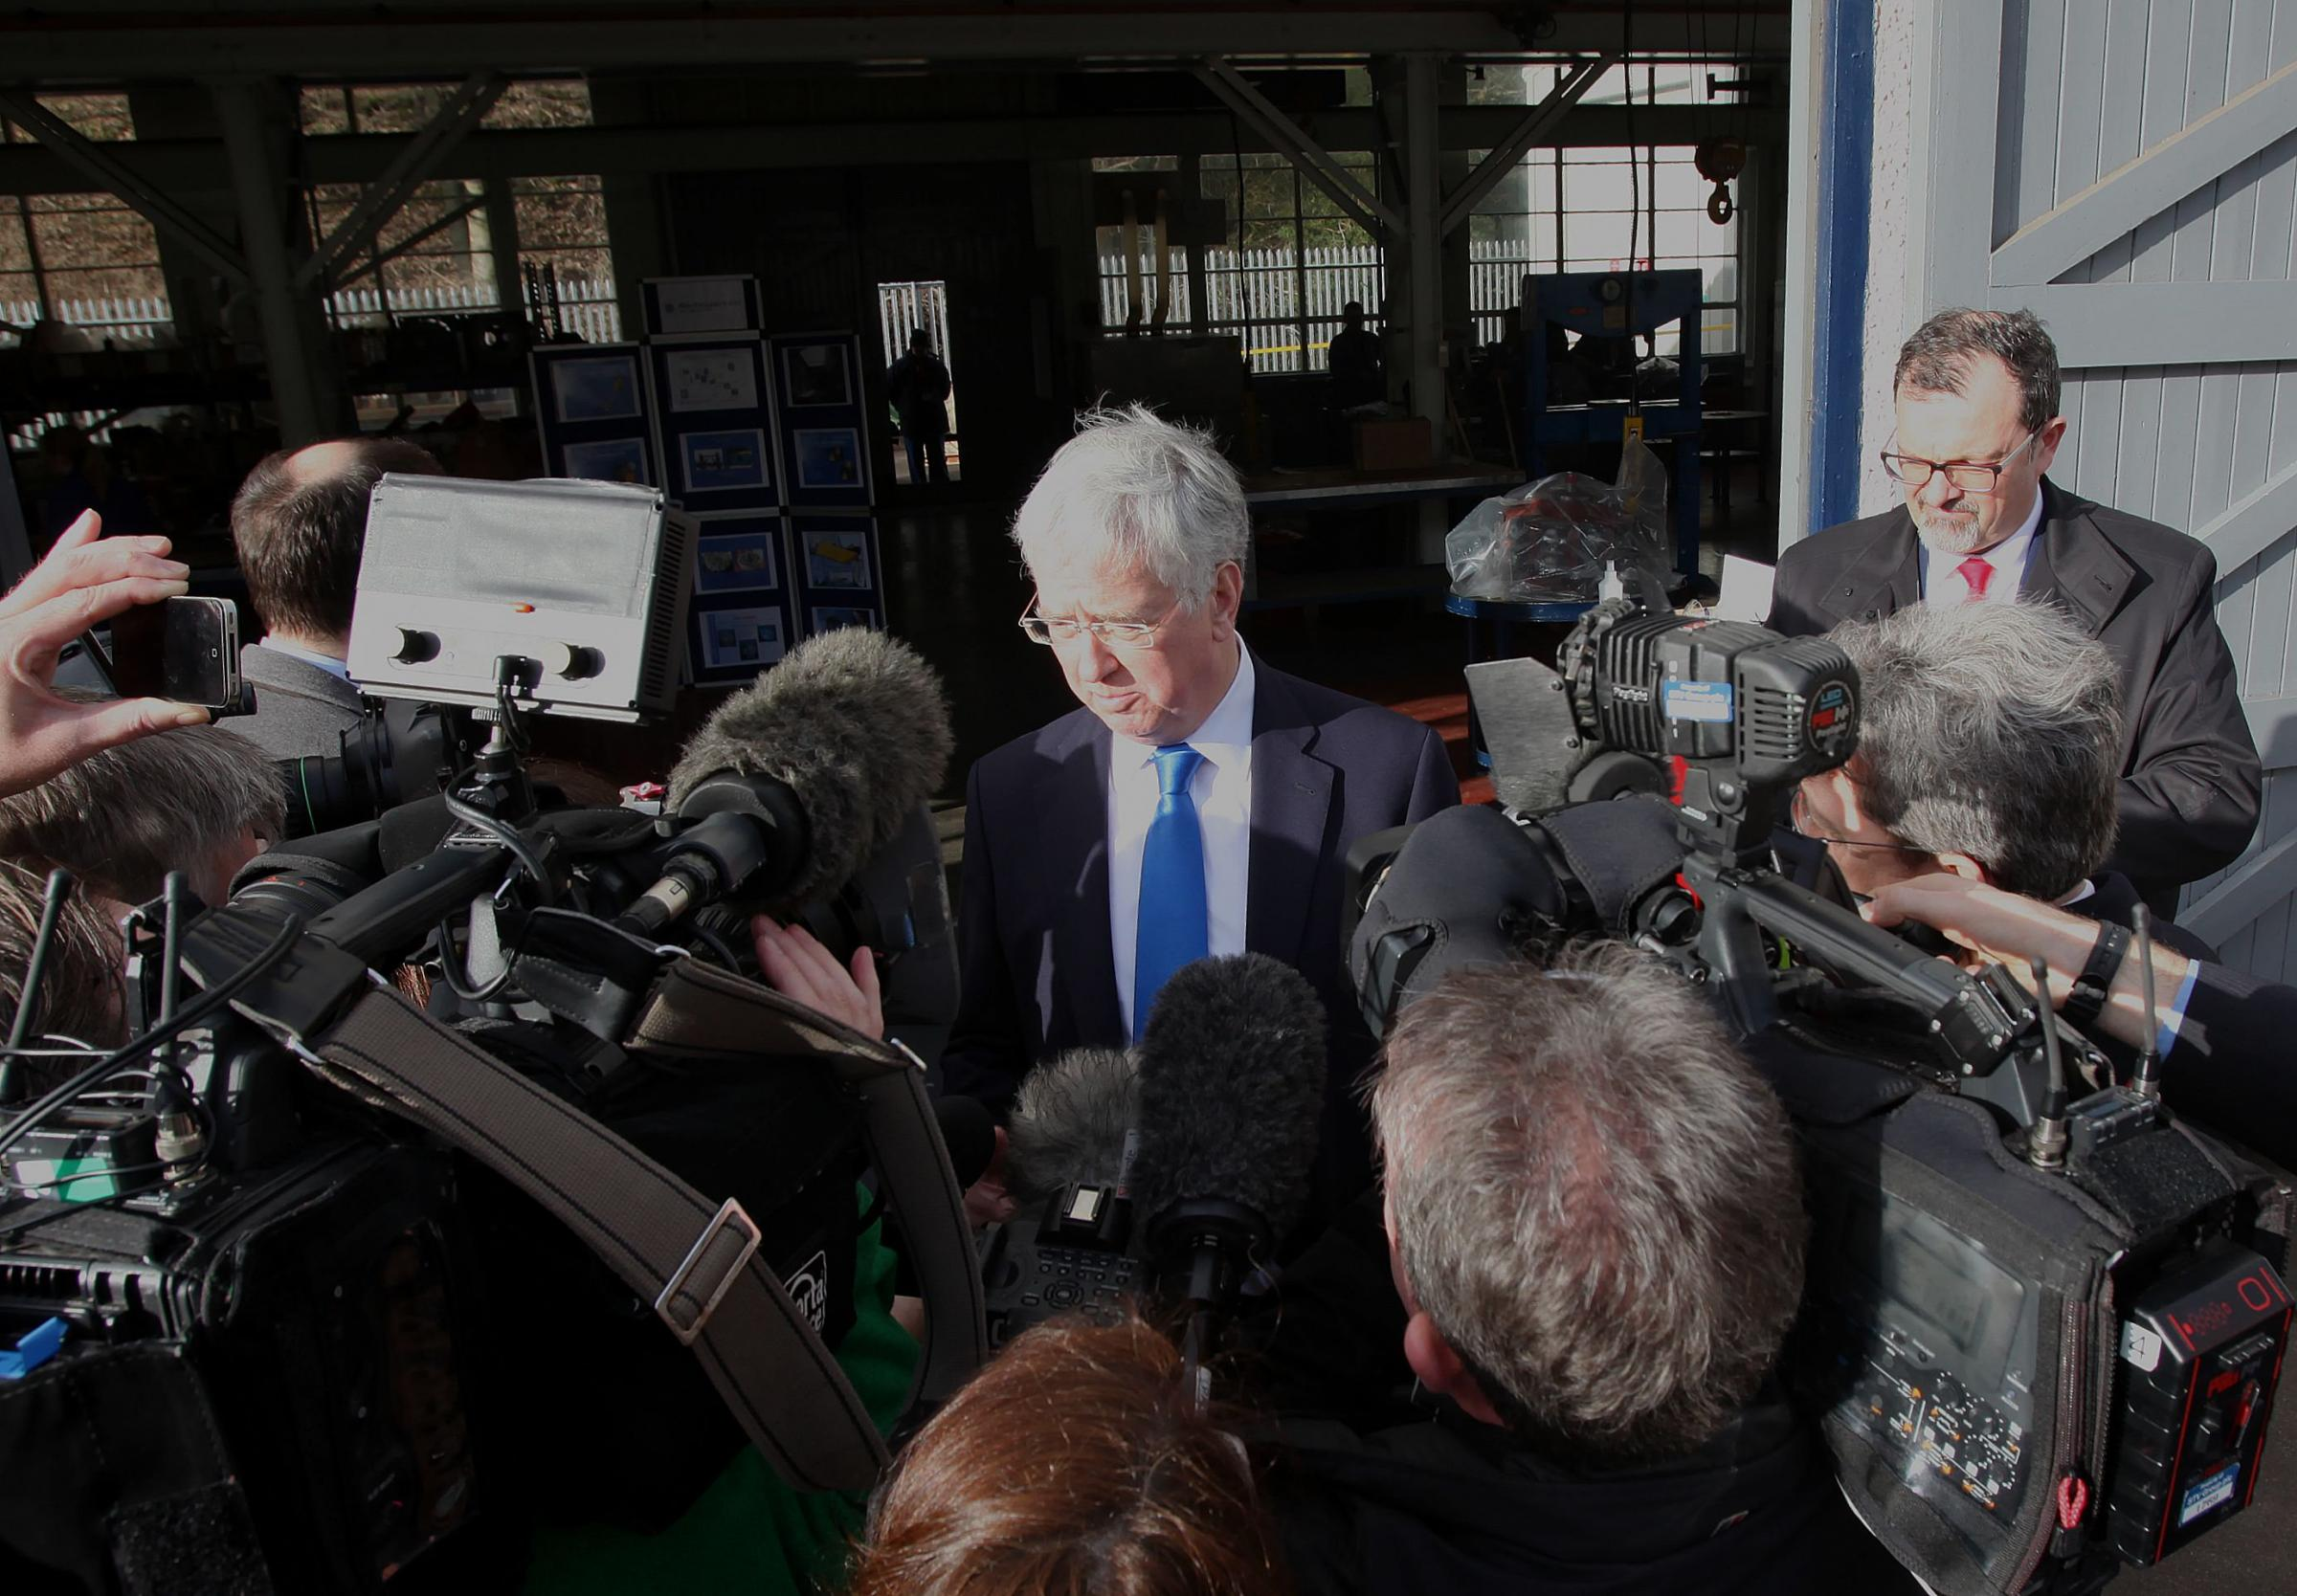 Analysis: under pressure Fallon seeks to outmanoeuvre media by dodging questions on blocking indyref2